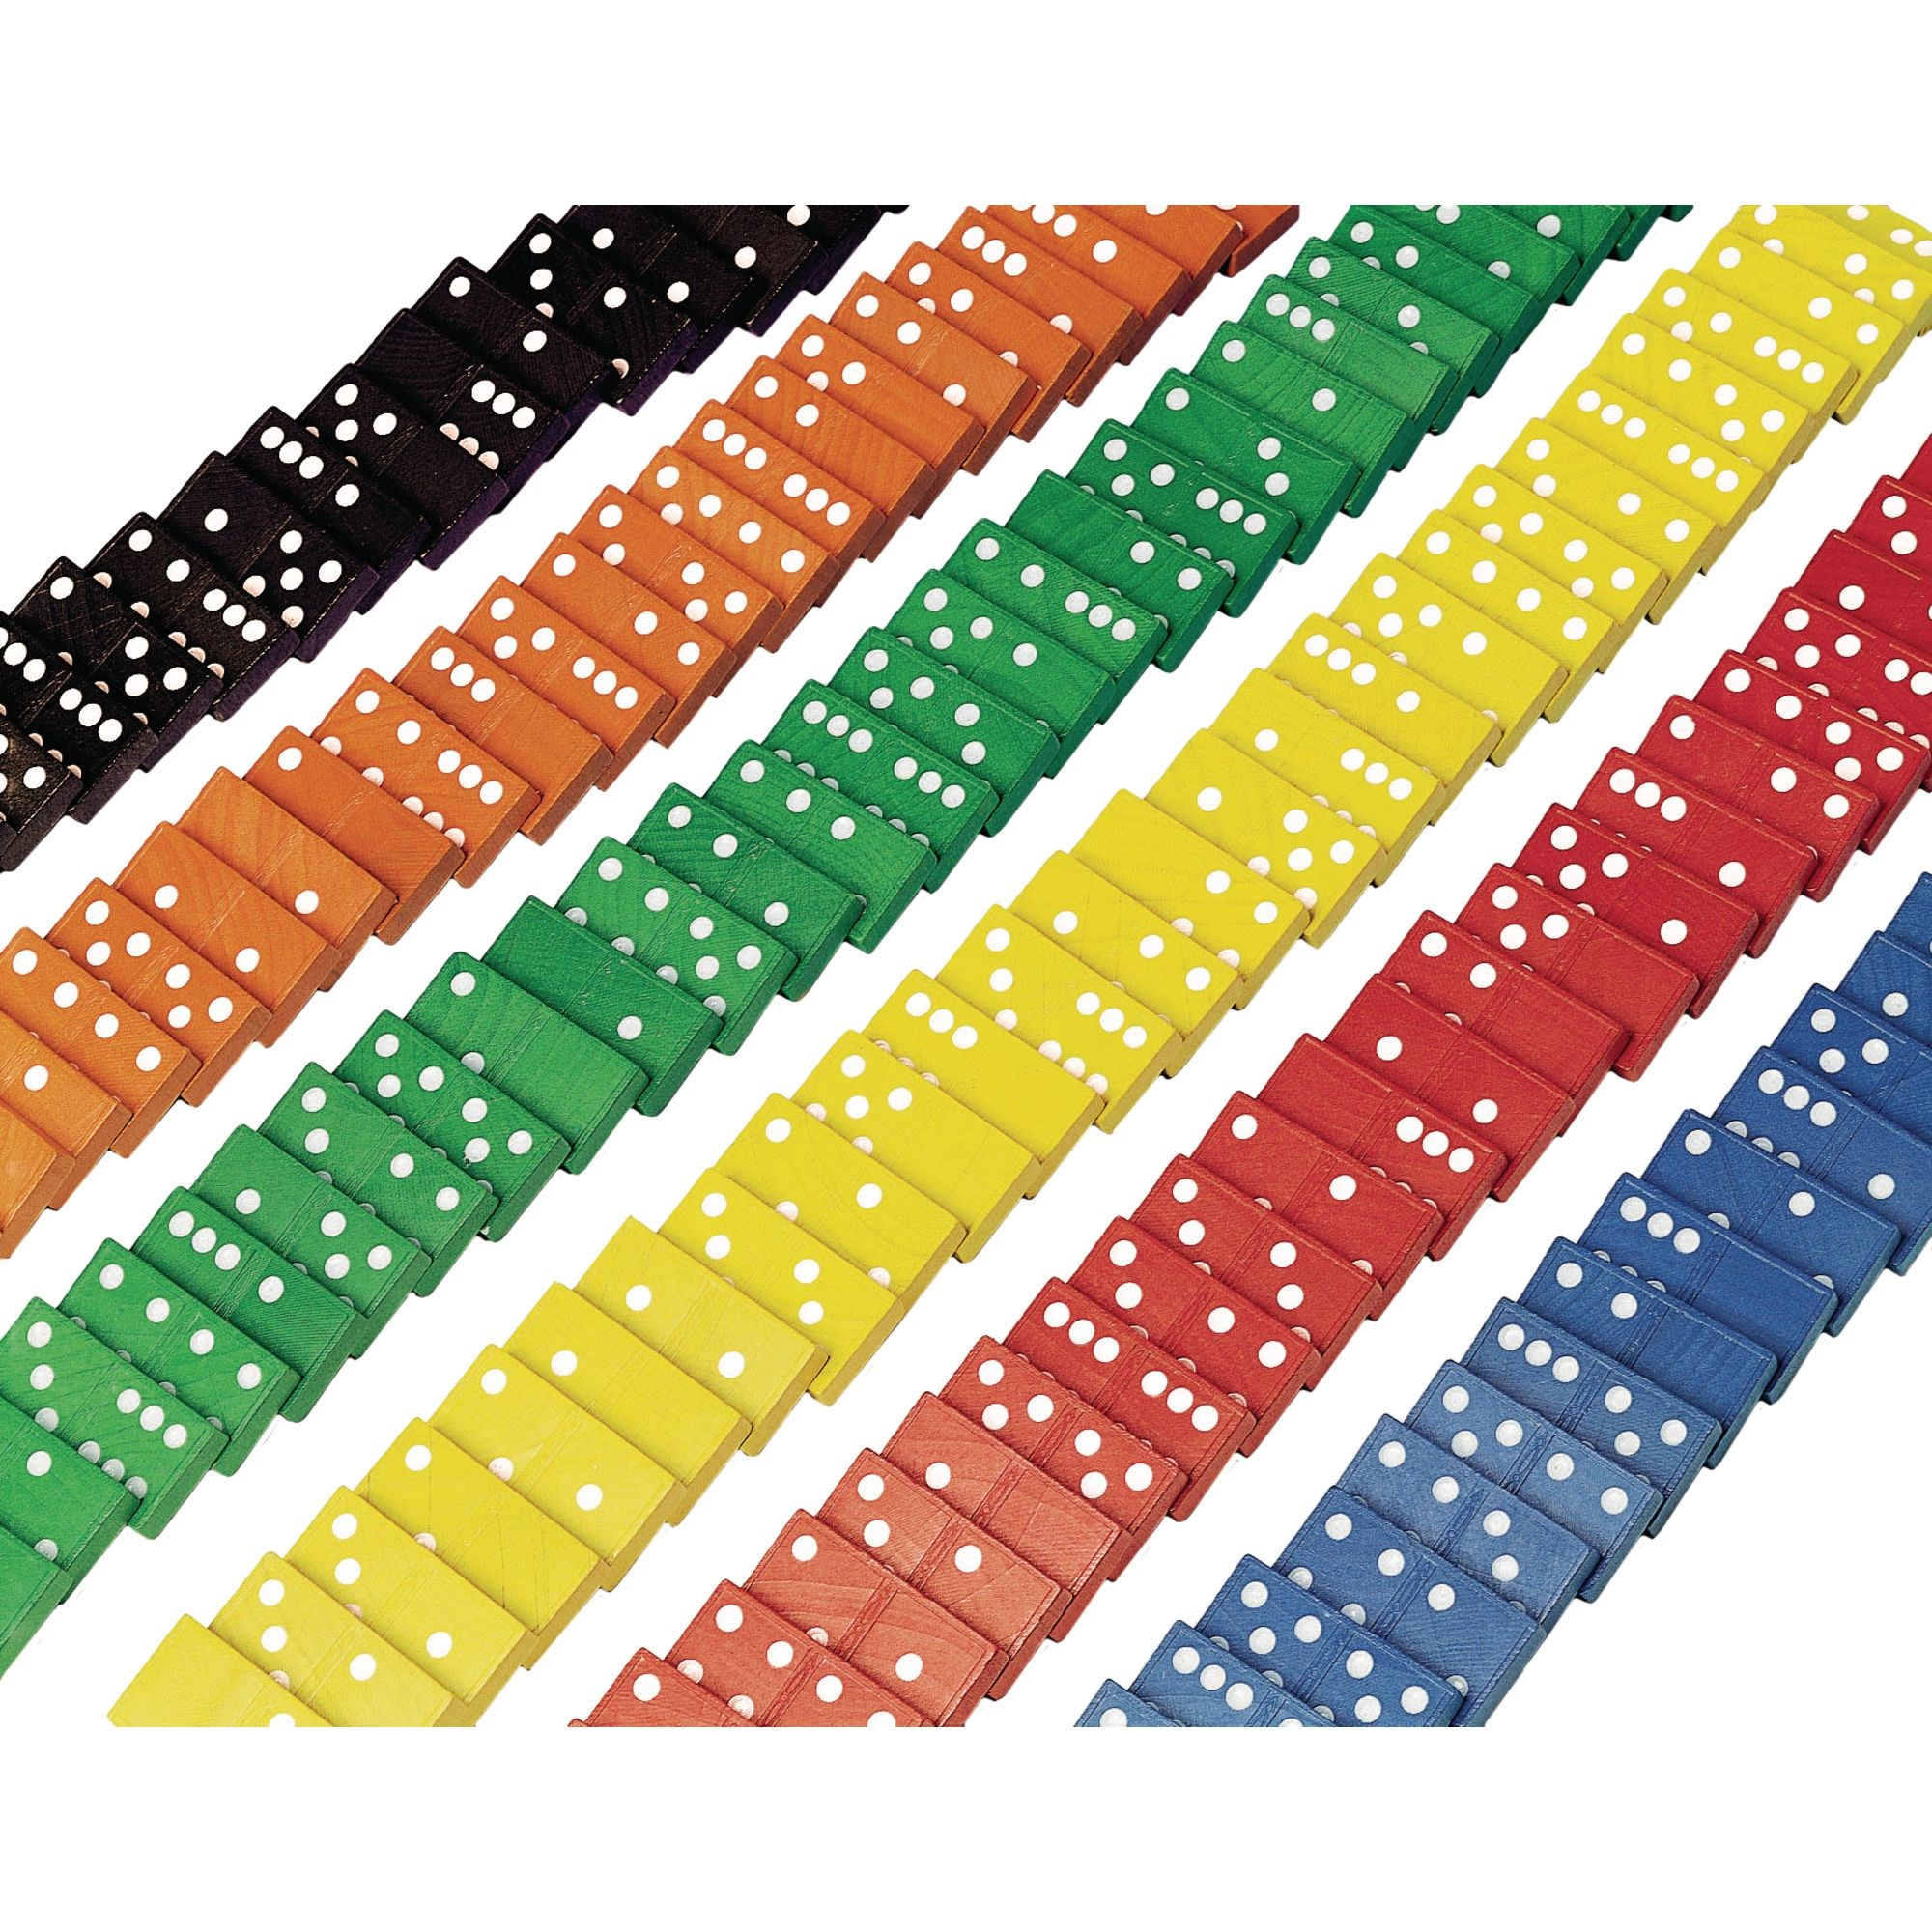 Coloured Dominoes